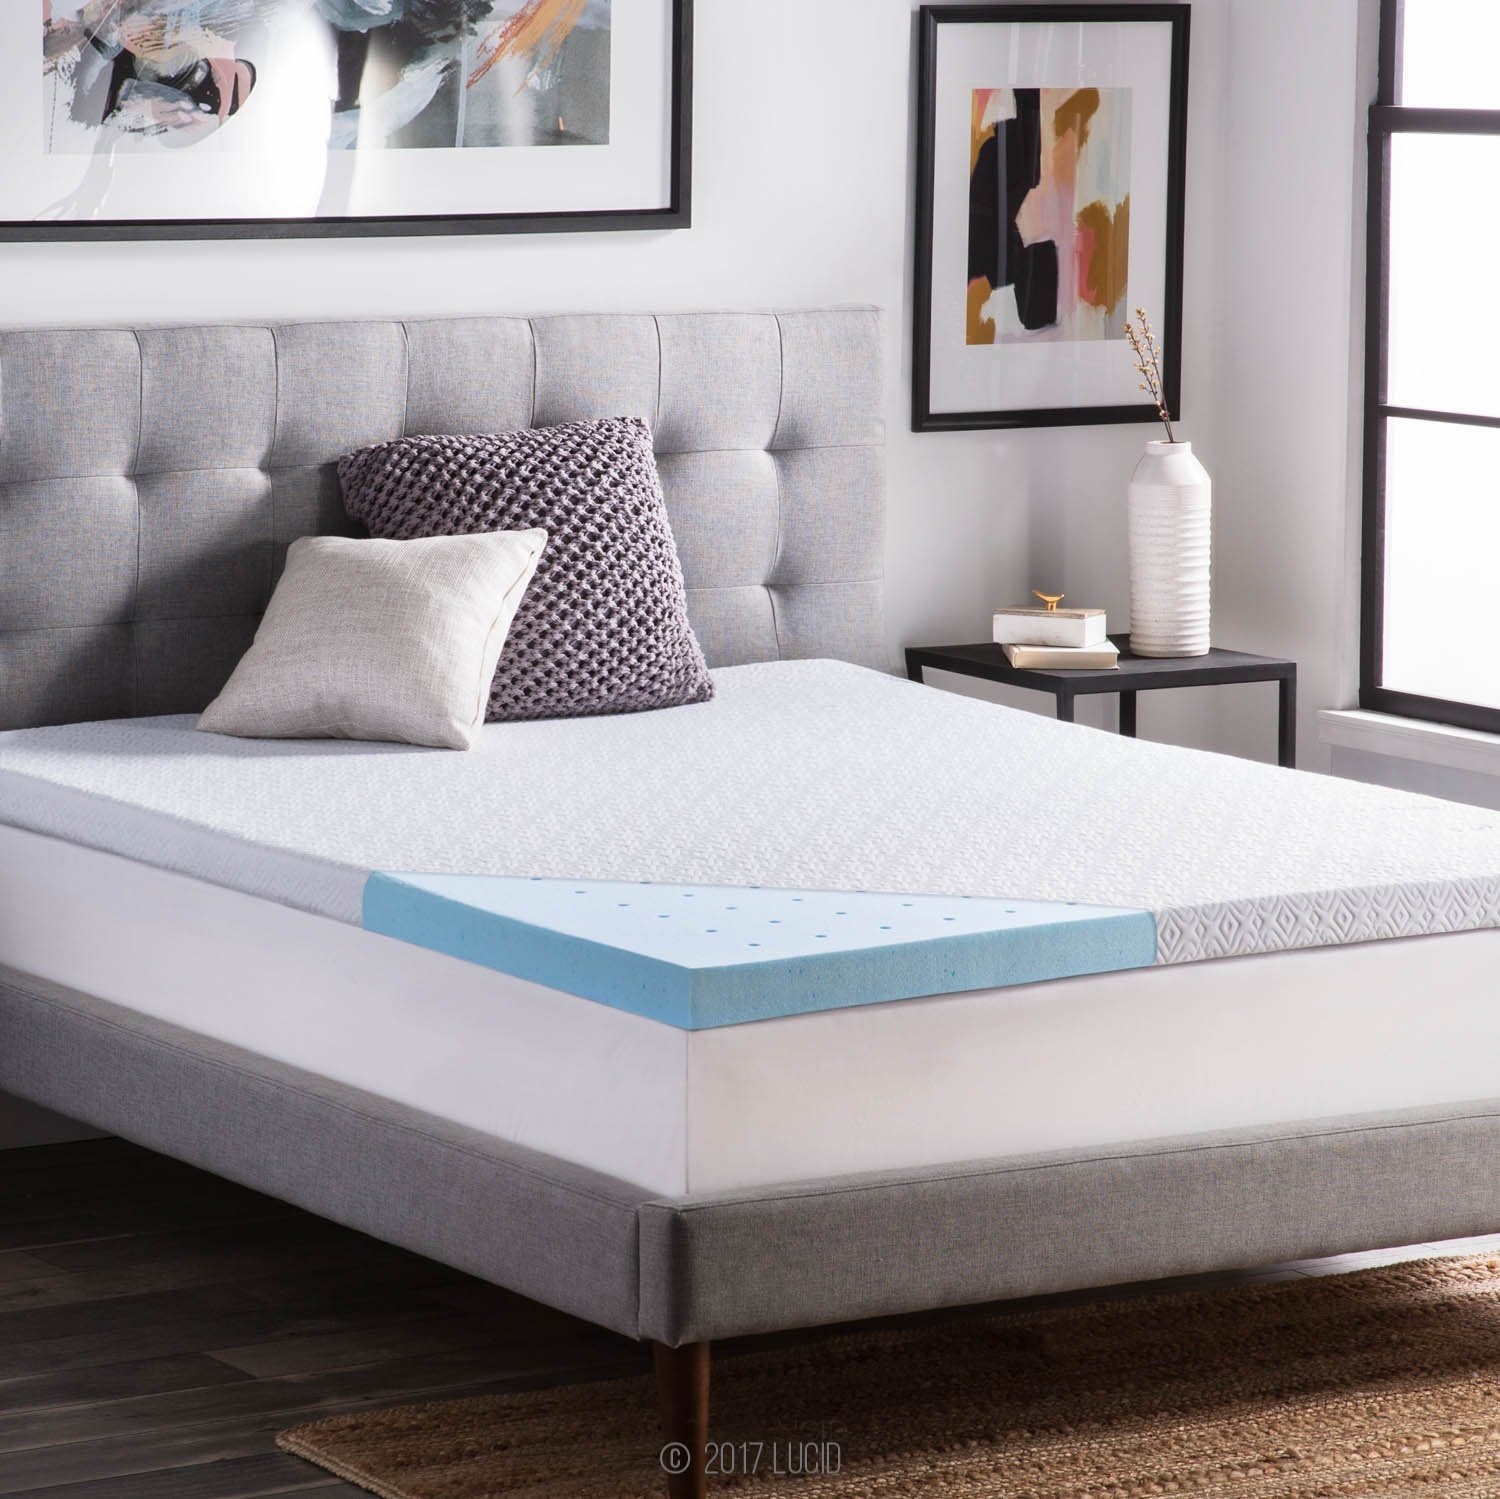 LUCID 2.5 Inch Gel Infused Ventilated Memory Foam Mattress Topper with Removable Tencel Blend Cover 3-Year Warranty - Twin XL Size